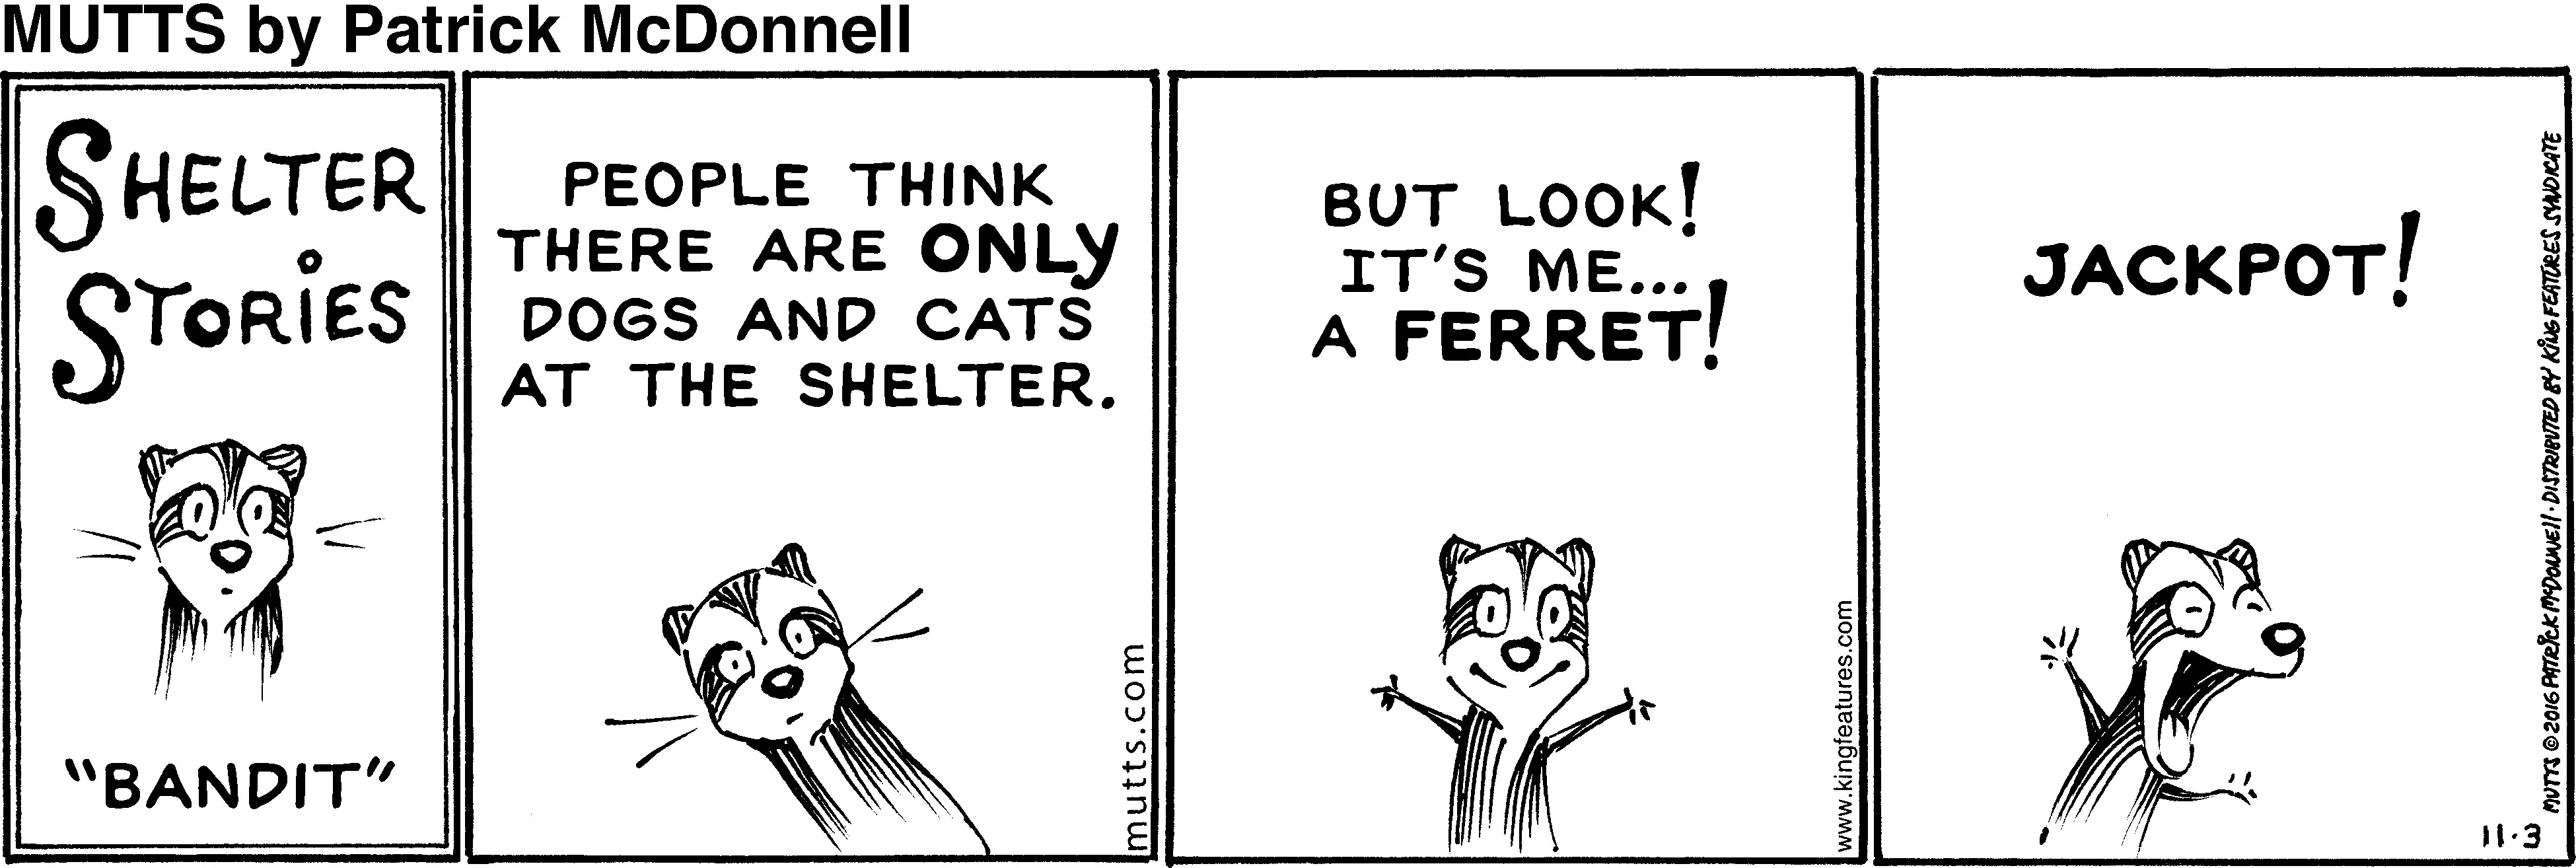 Mutts Cartoon about ferrets in shelters